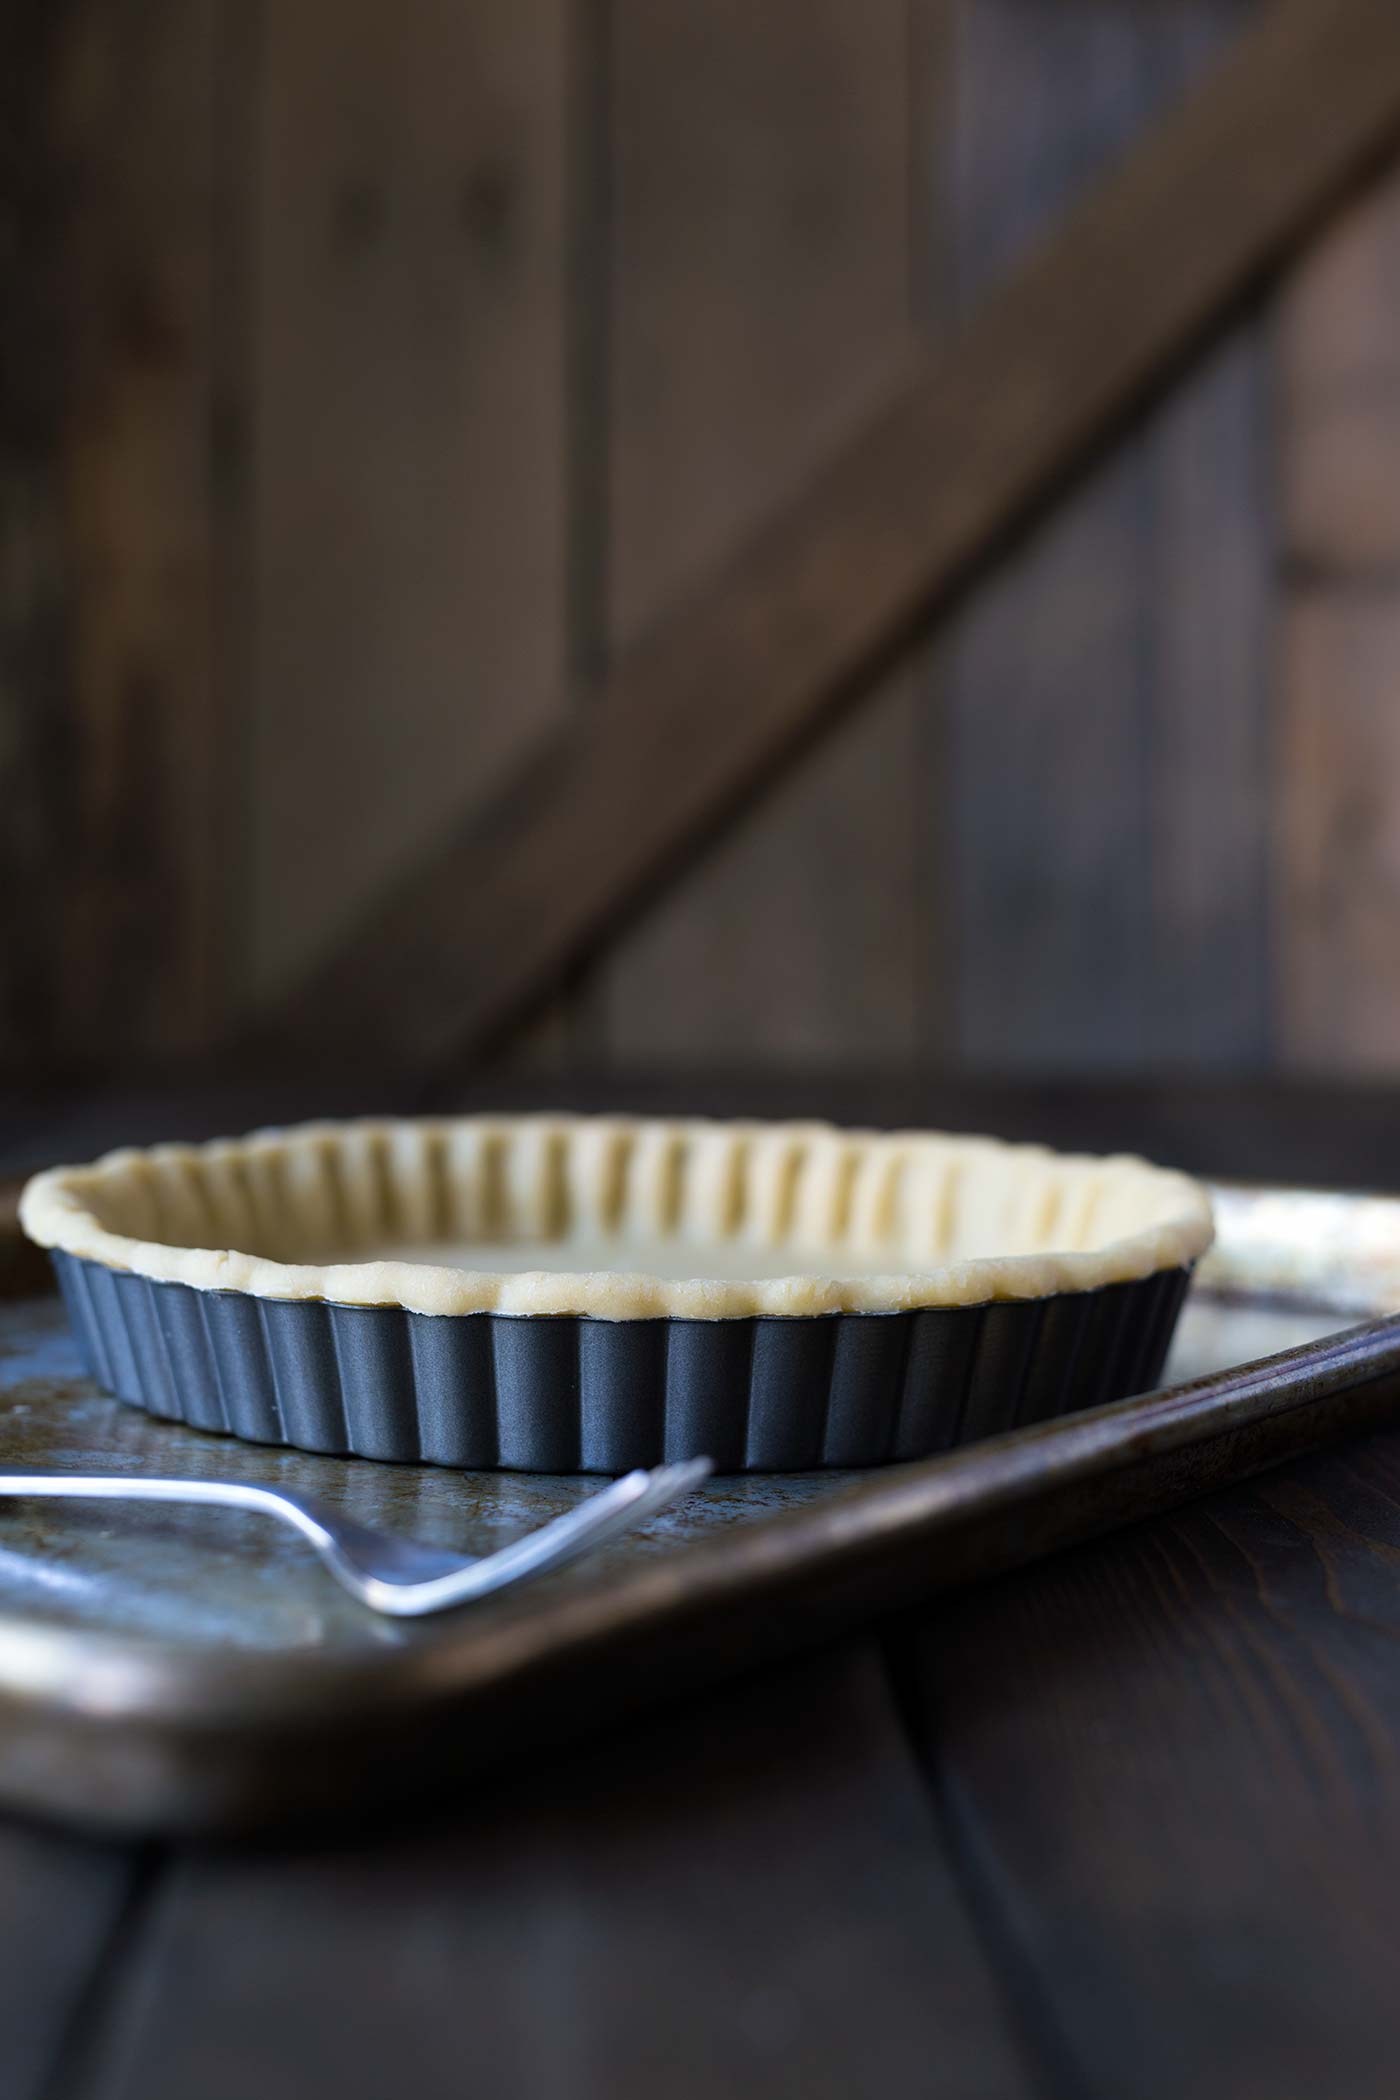 A side angle of the tart in the pan.